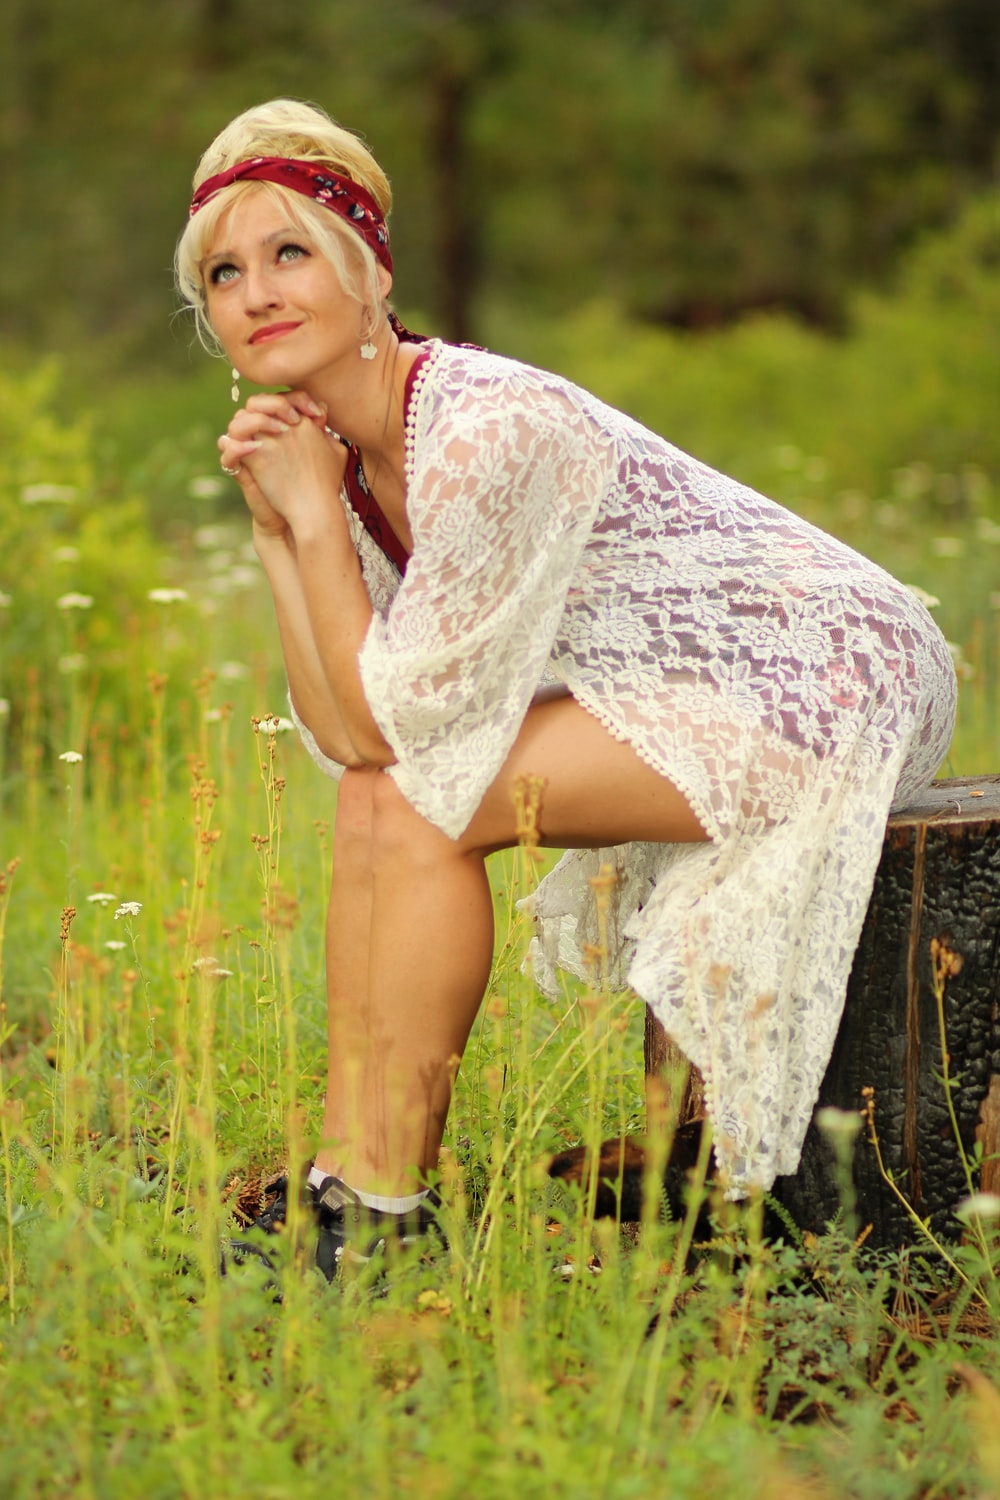 woman in white lace dress standing on green grass field during daytime